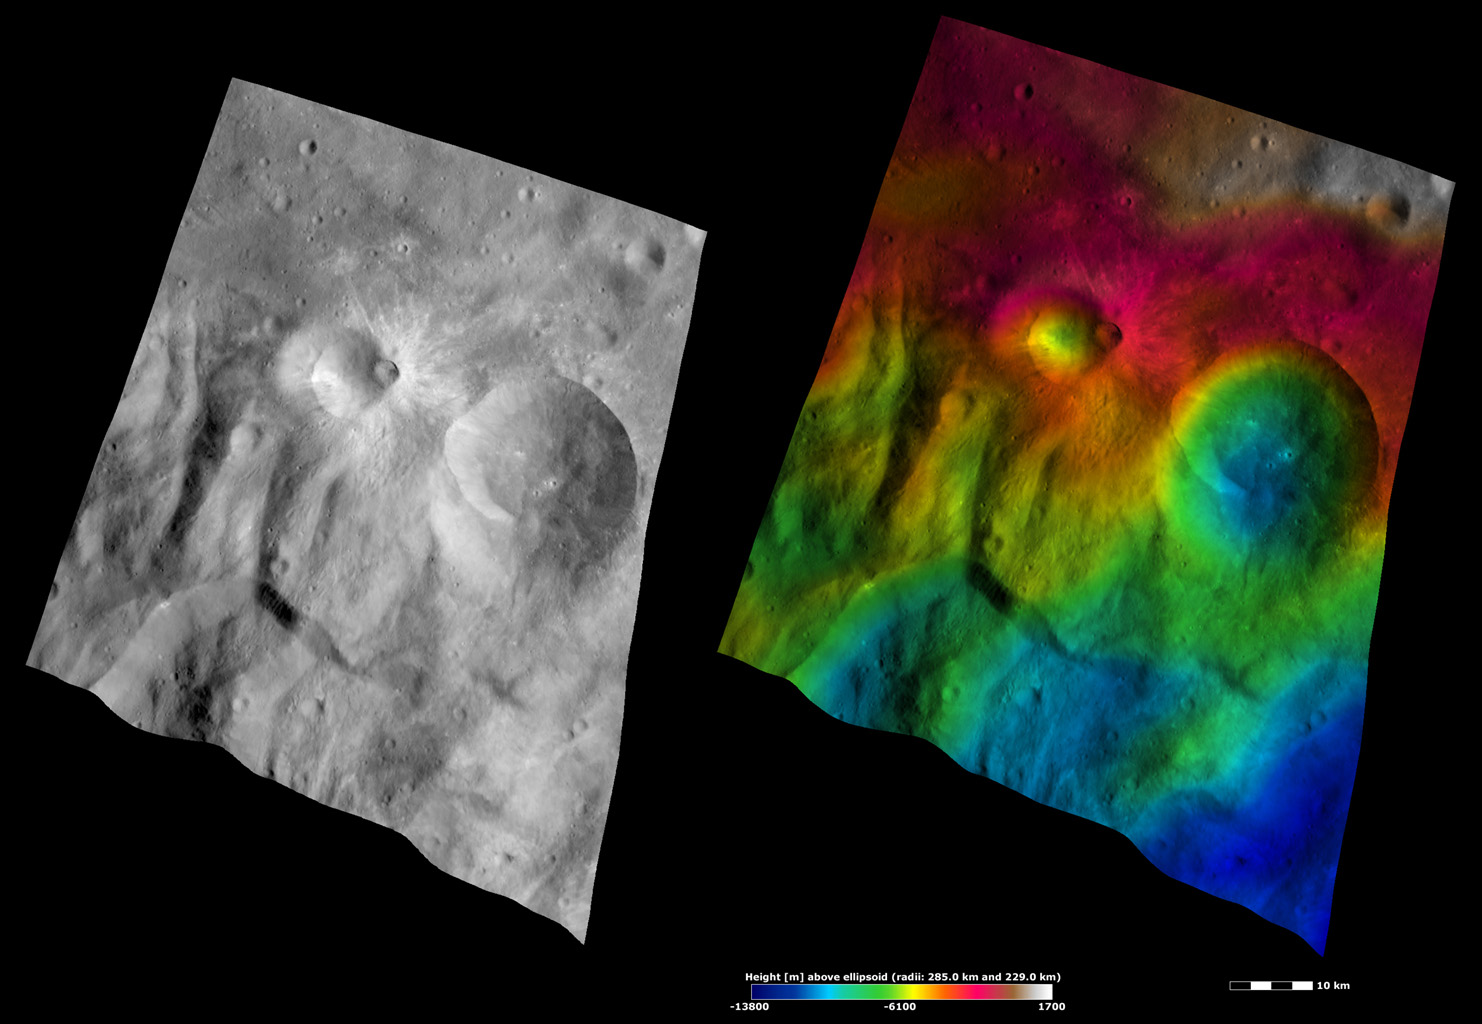 Apparent Brightness and Topography Images of Tuccia and Eusebia Craters